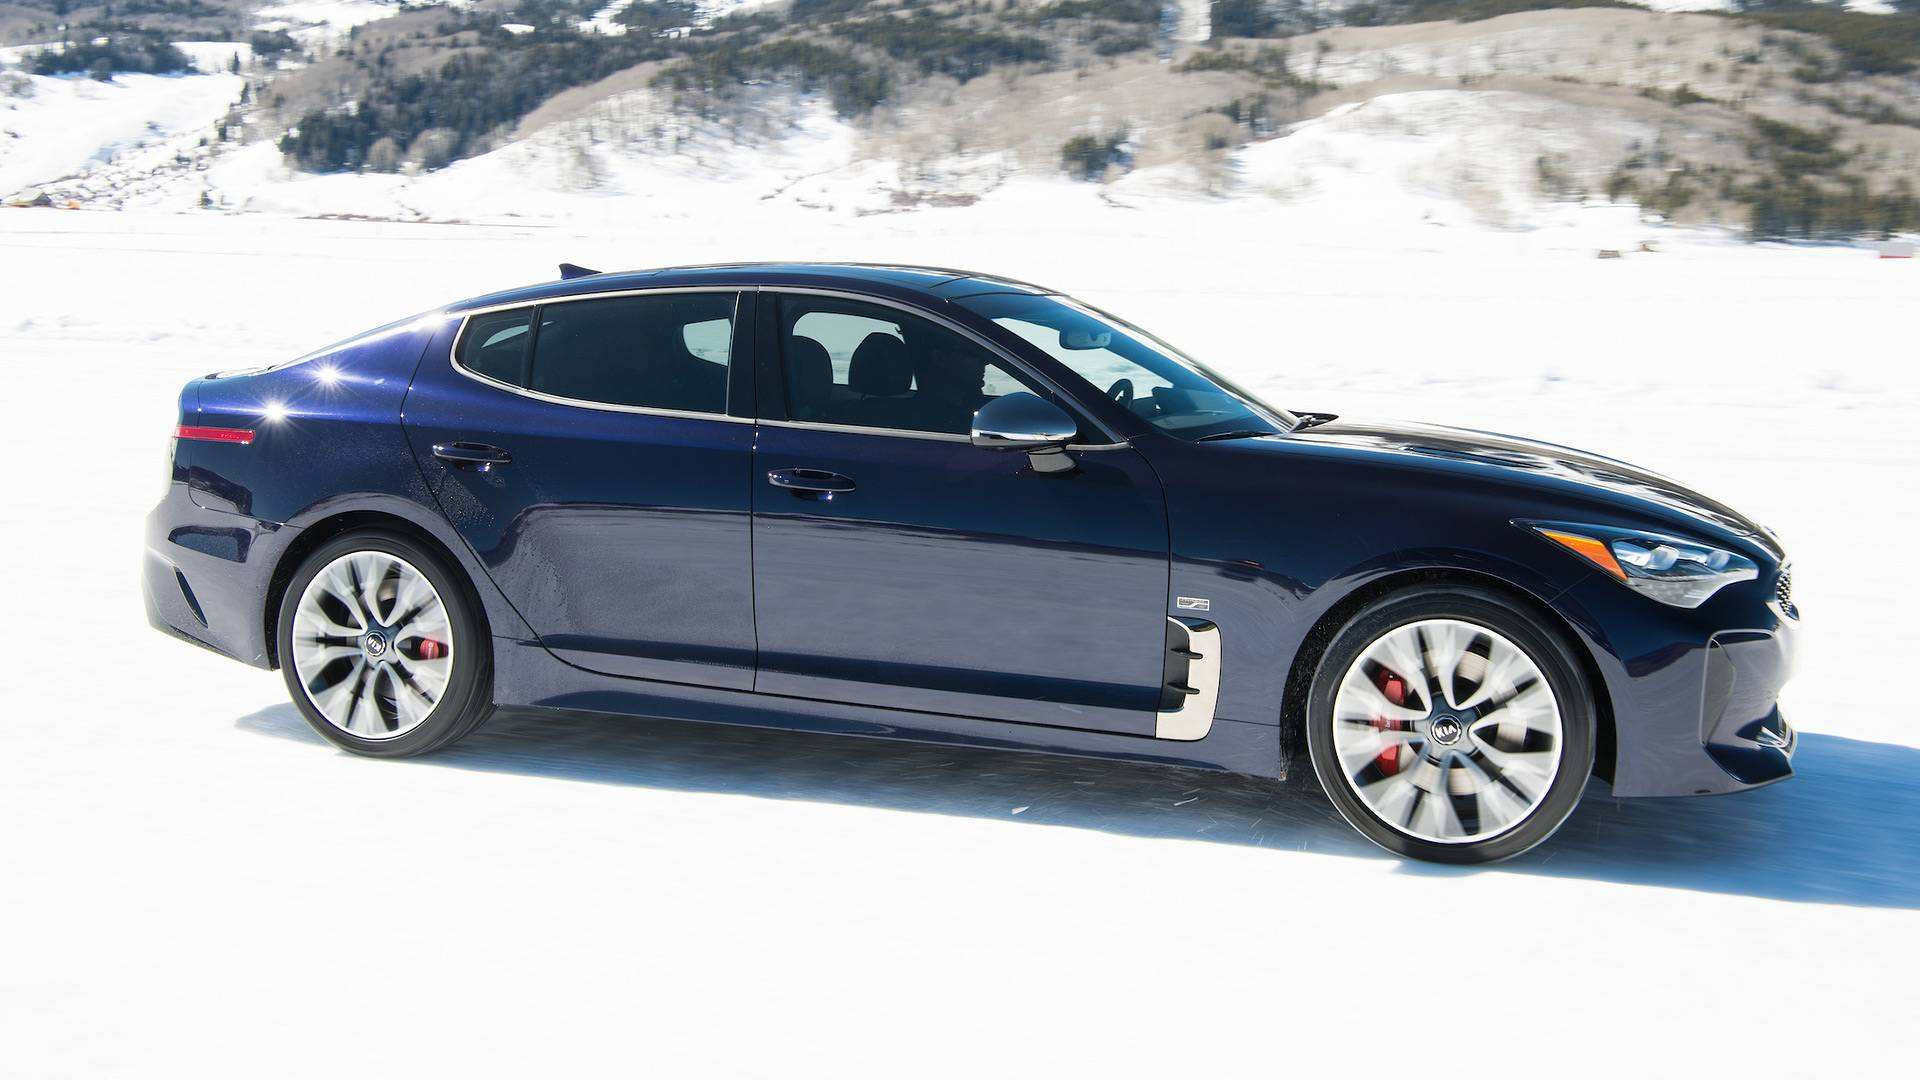 22 New 2019 Kia Stinger Gt Model with 2019 Kia Stinger Gt